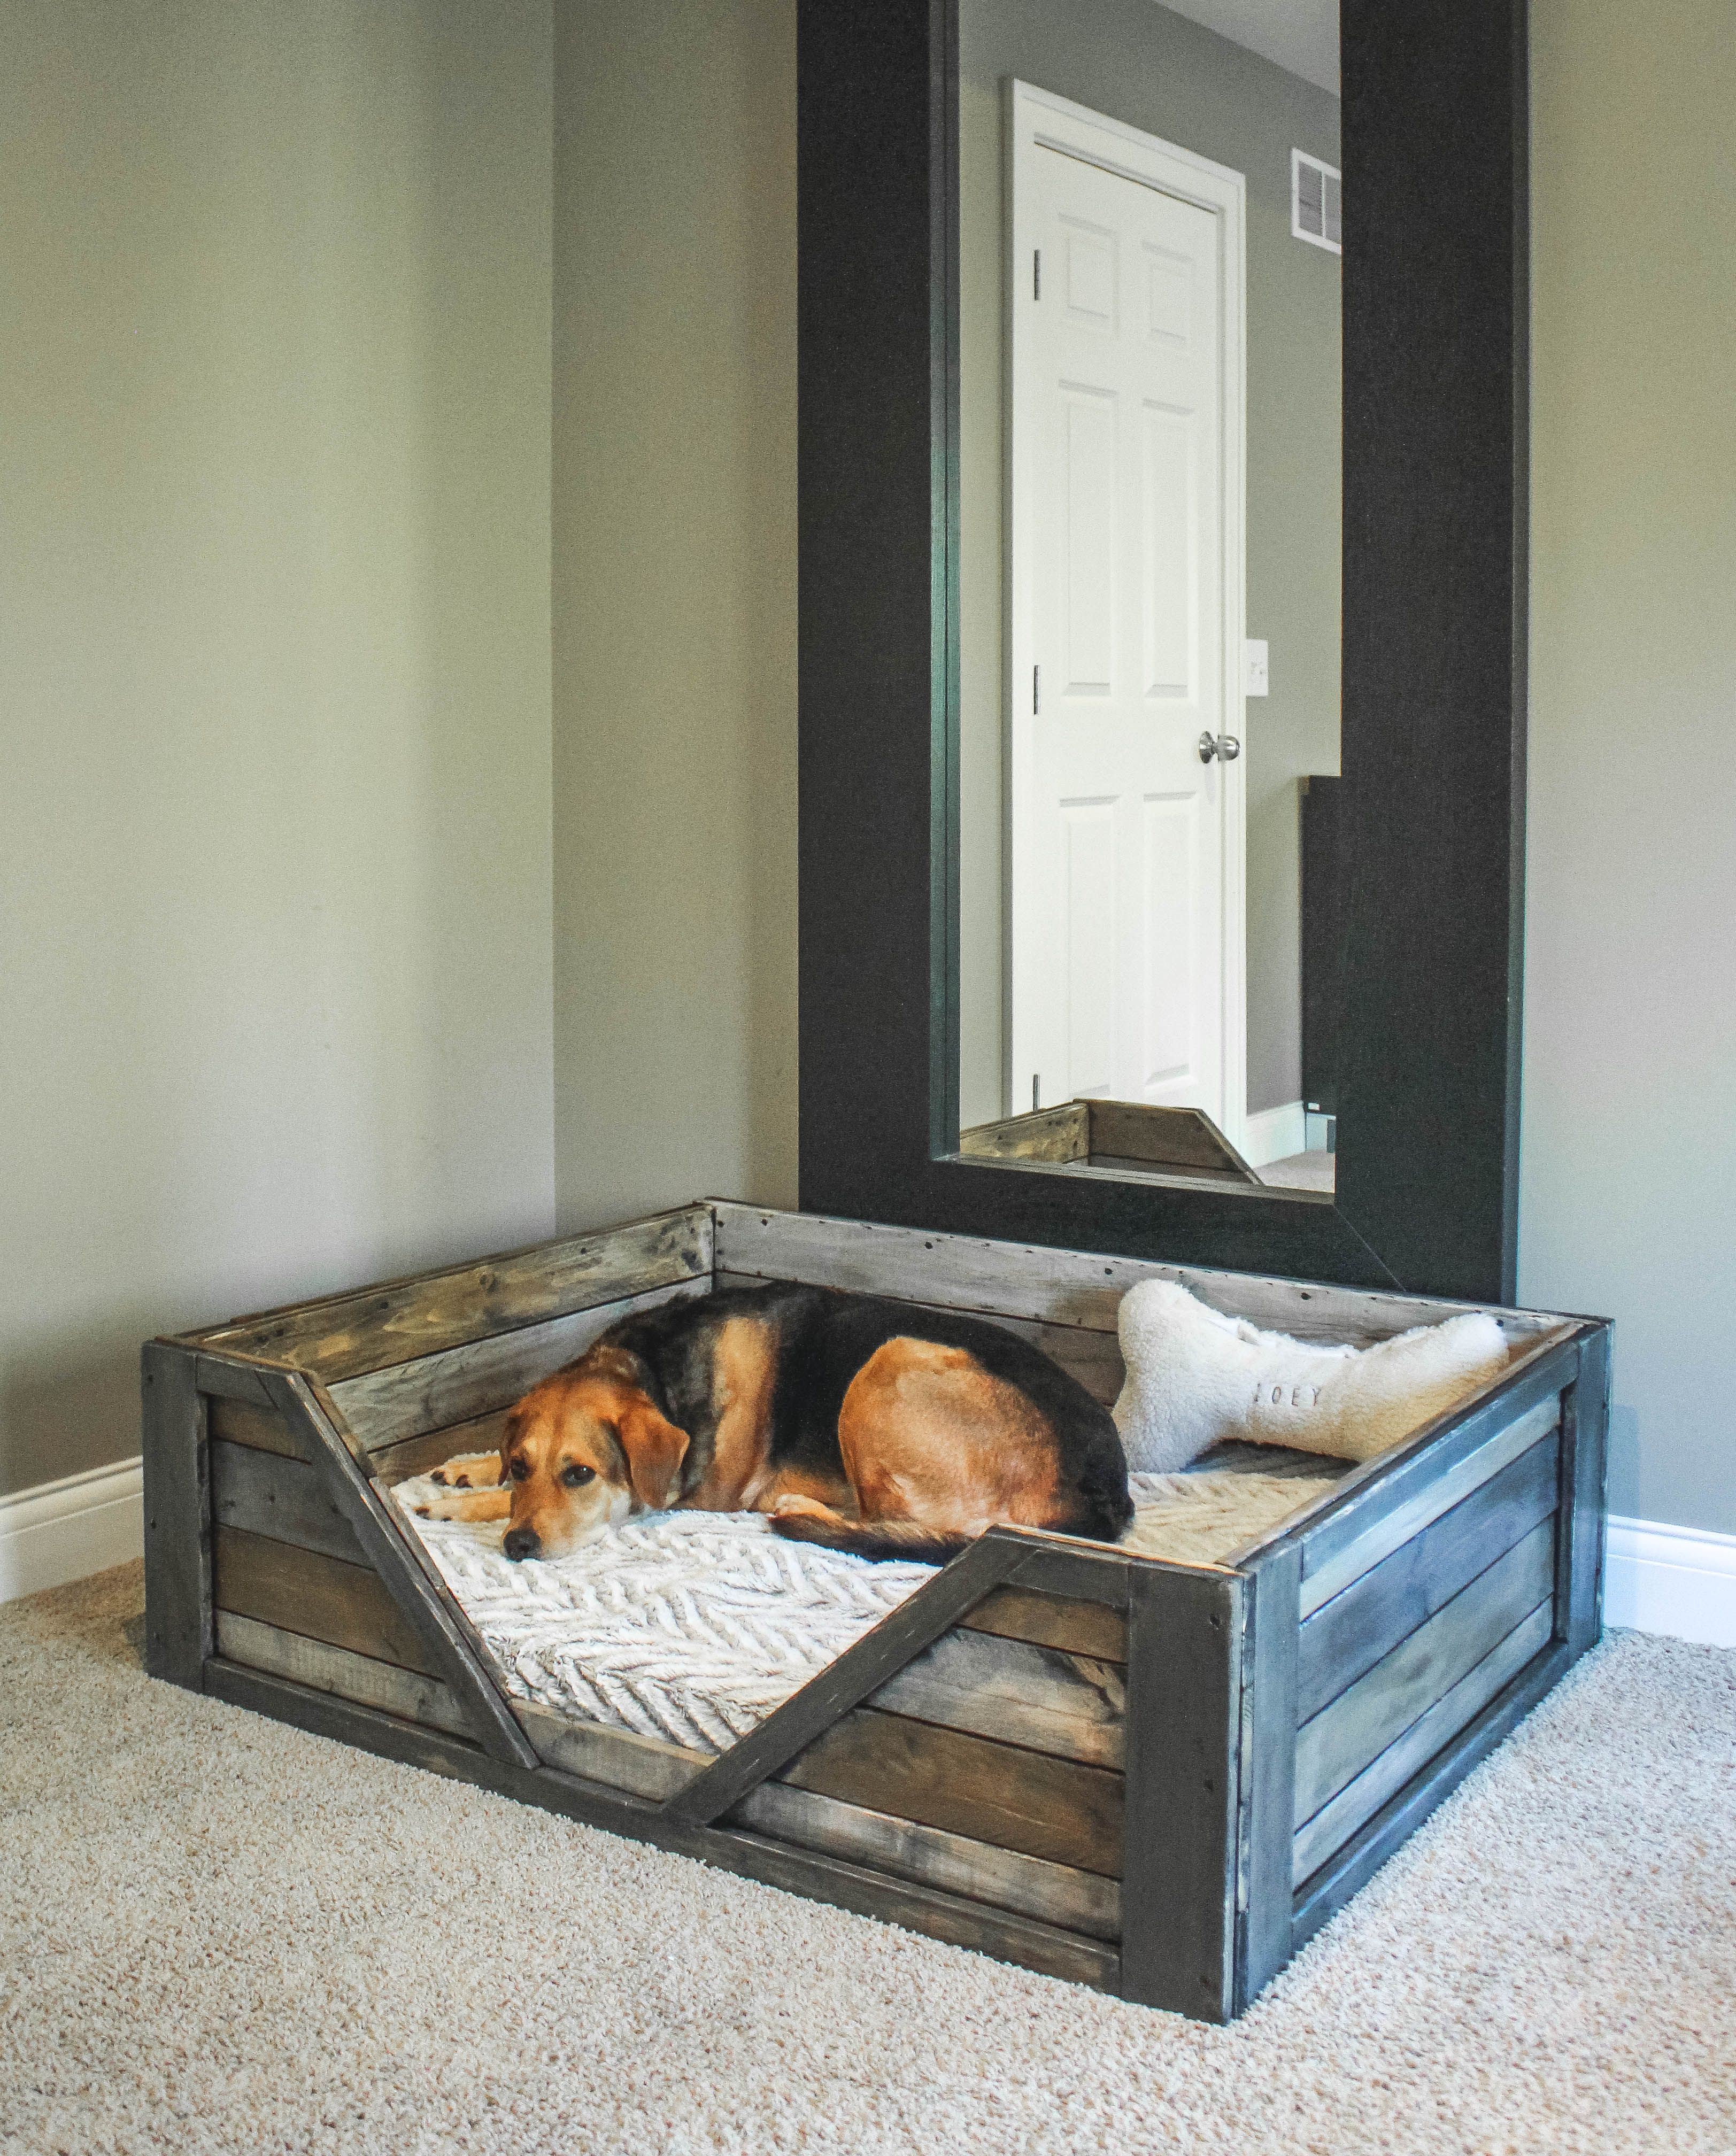 Diy pallet dog bed such a great project house inspiration diy pallet dog bed such a great project jeuxipadfo Gallery